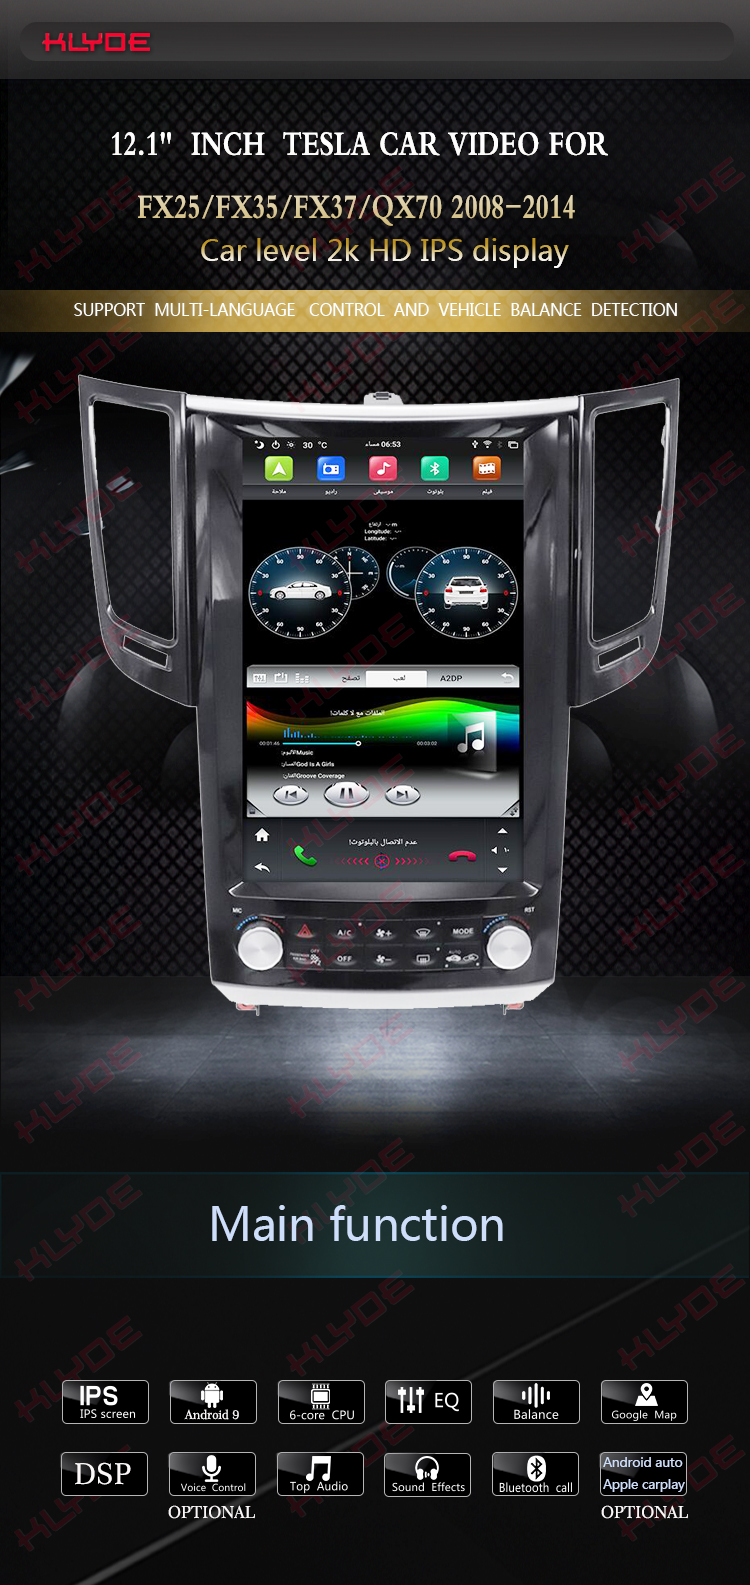 FX25/FX35/FX37 QX70 2013 android car multimedia system